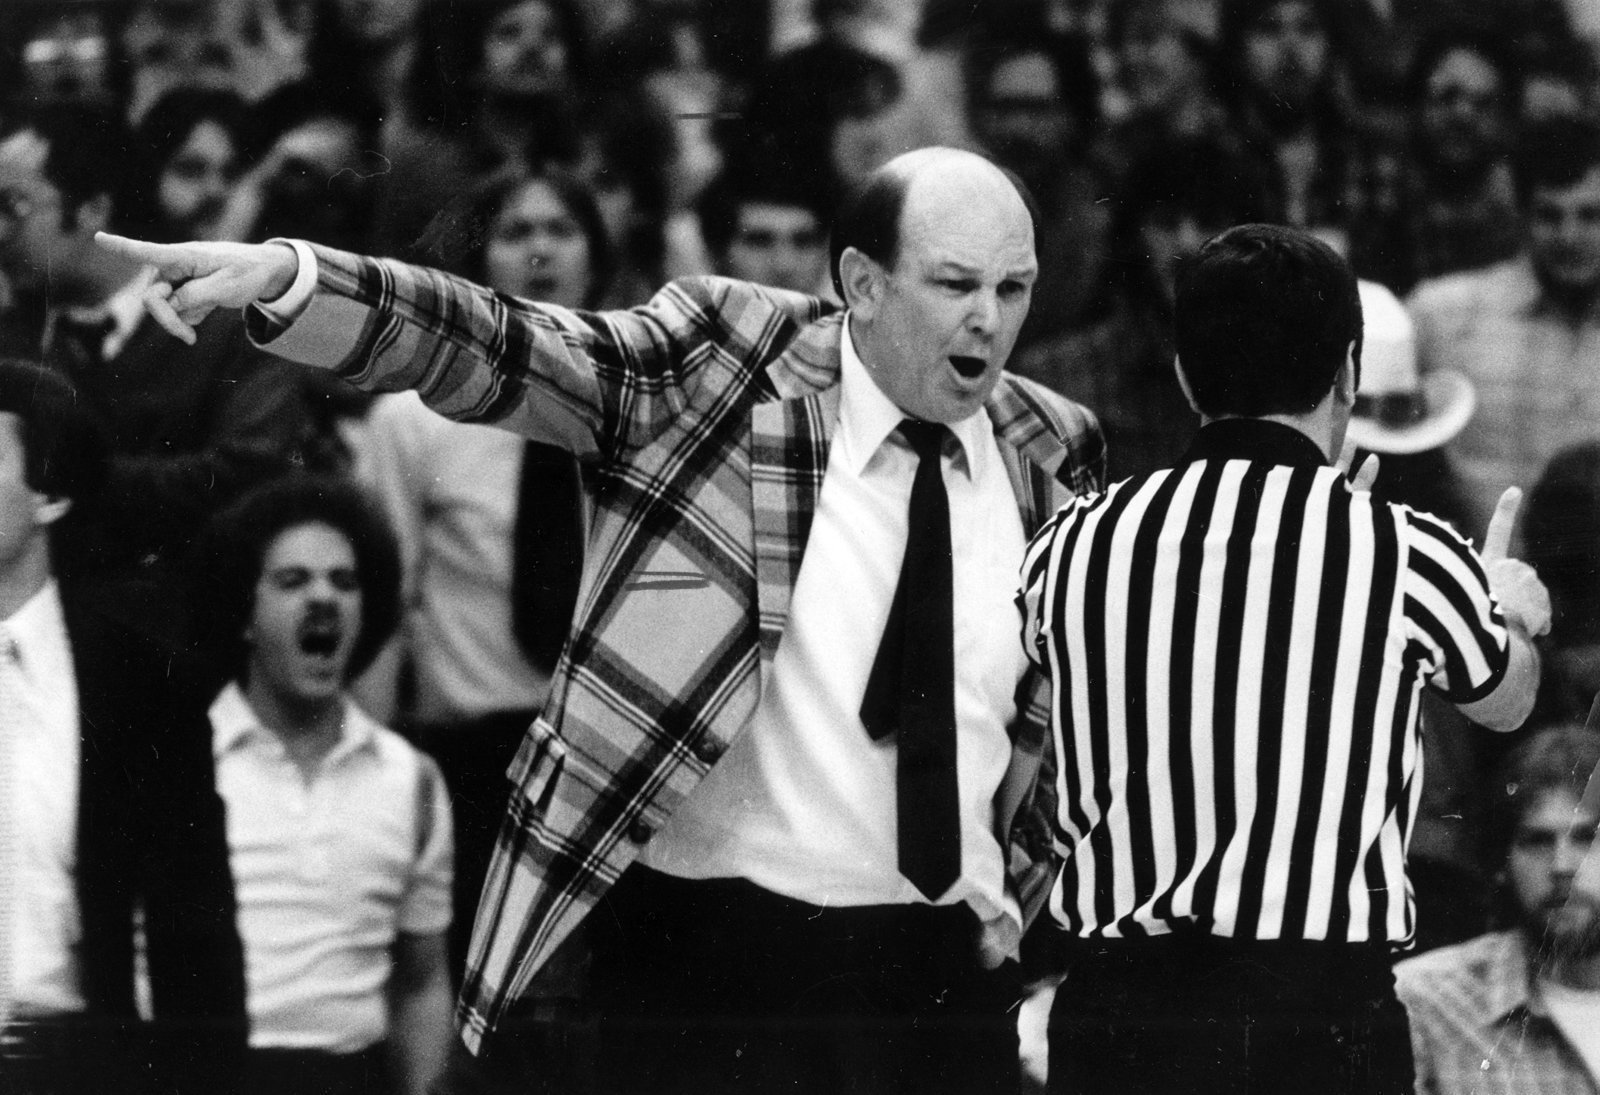 Bal-lefty-driesell-named-finalist-for-naismith-memorial-hall-of-fame-20160212